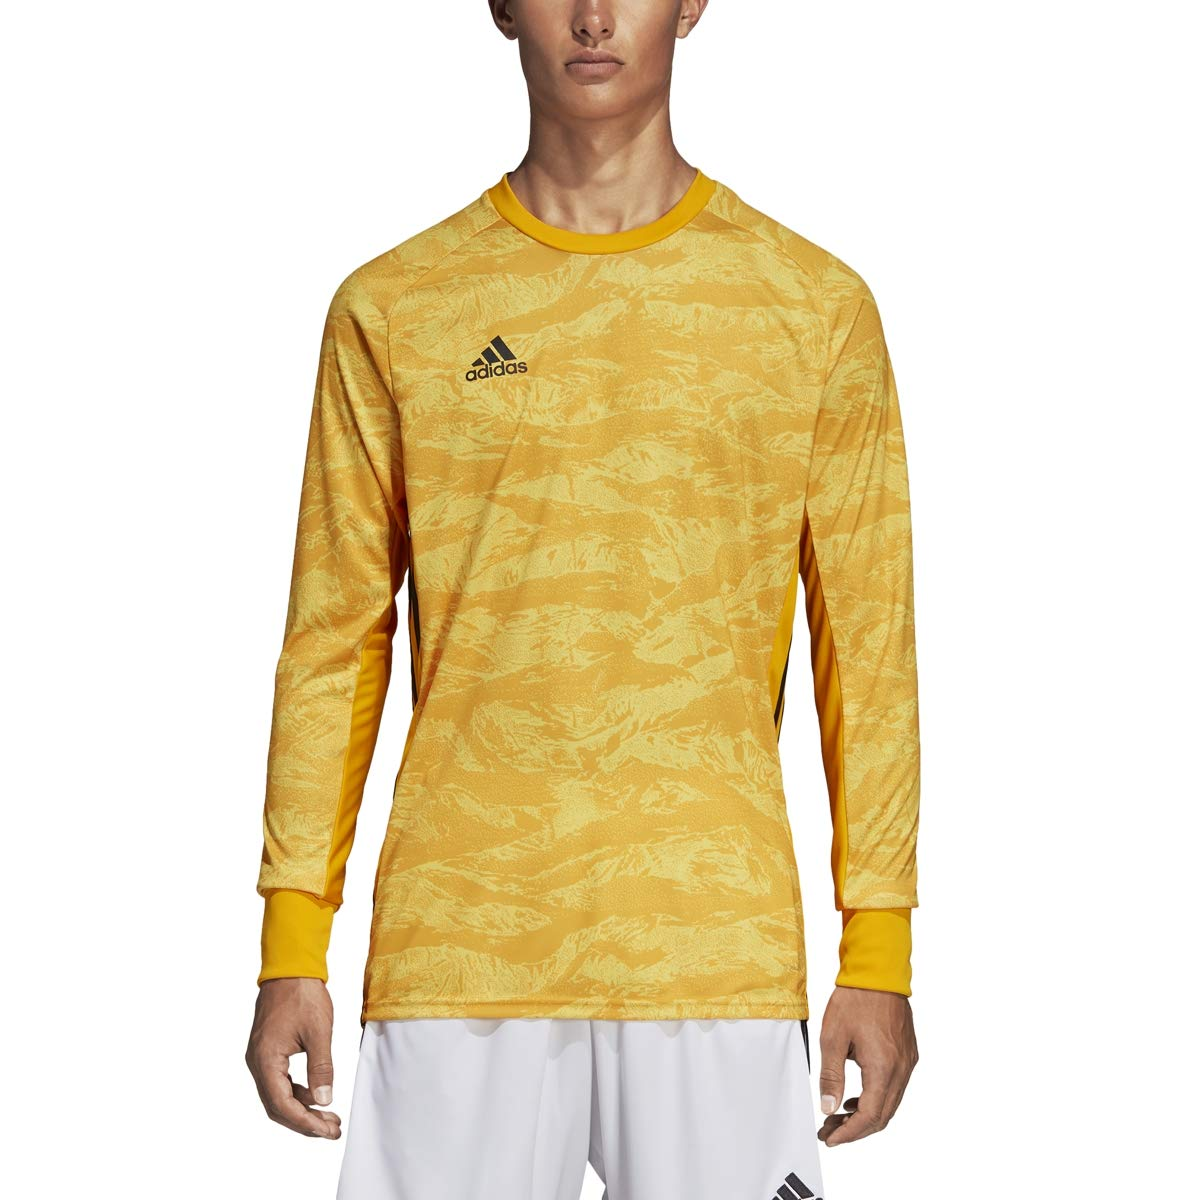 adidas AdiPro 18 Goalkeeper Jersey - Men's Soccer 2XL Collegiate Gold by adidas